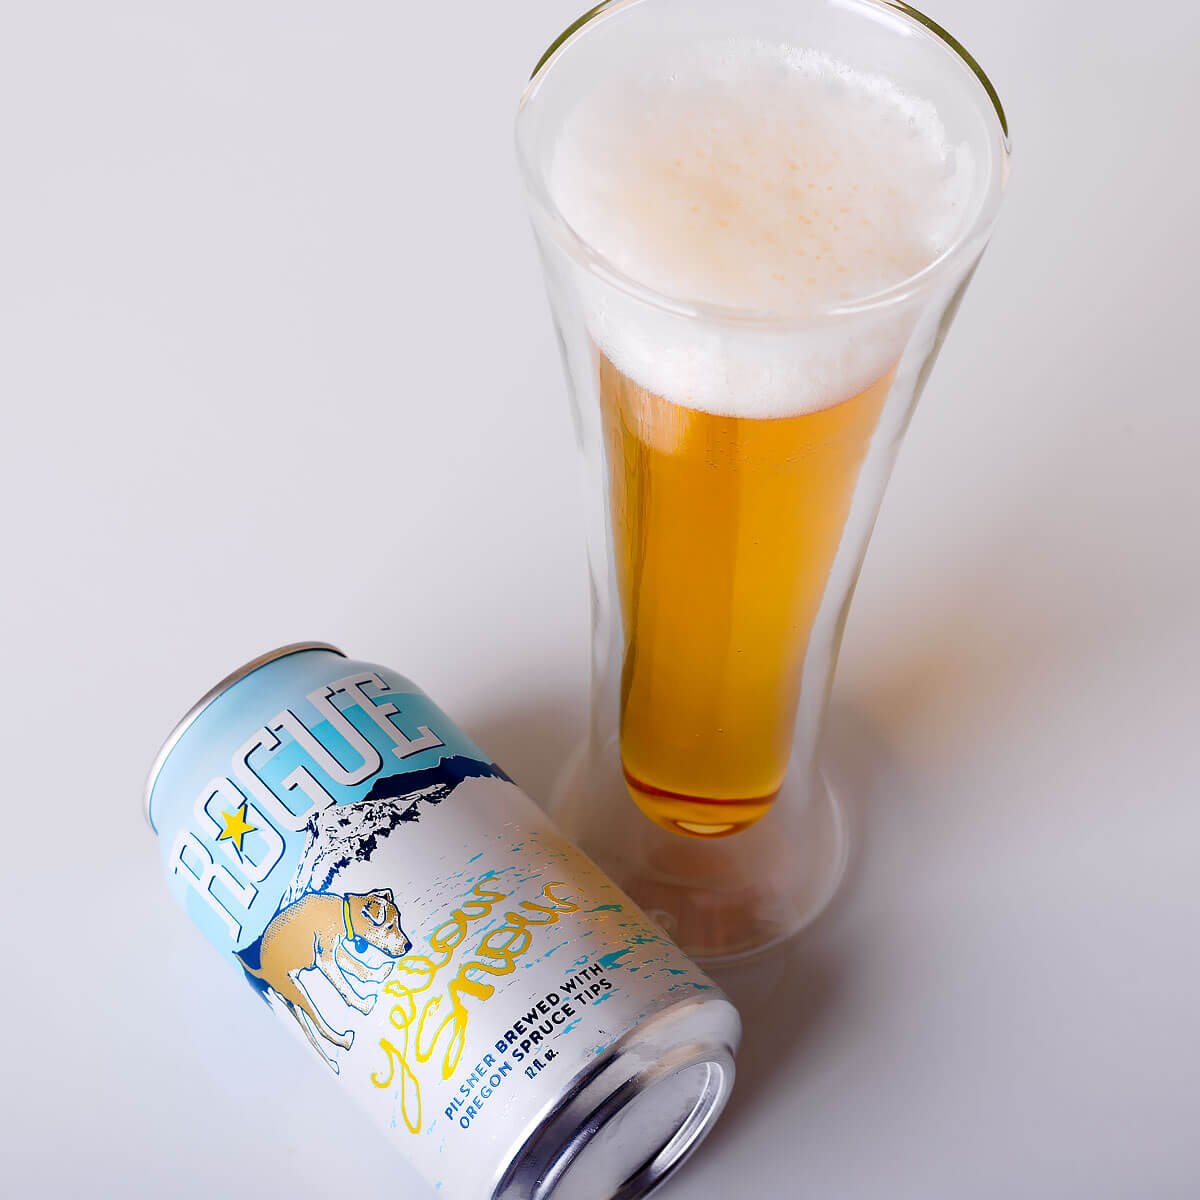 Yellow Snow Pilsner, a German-style Pilsener by Rogue Ales